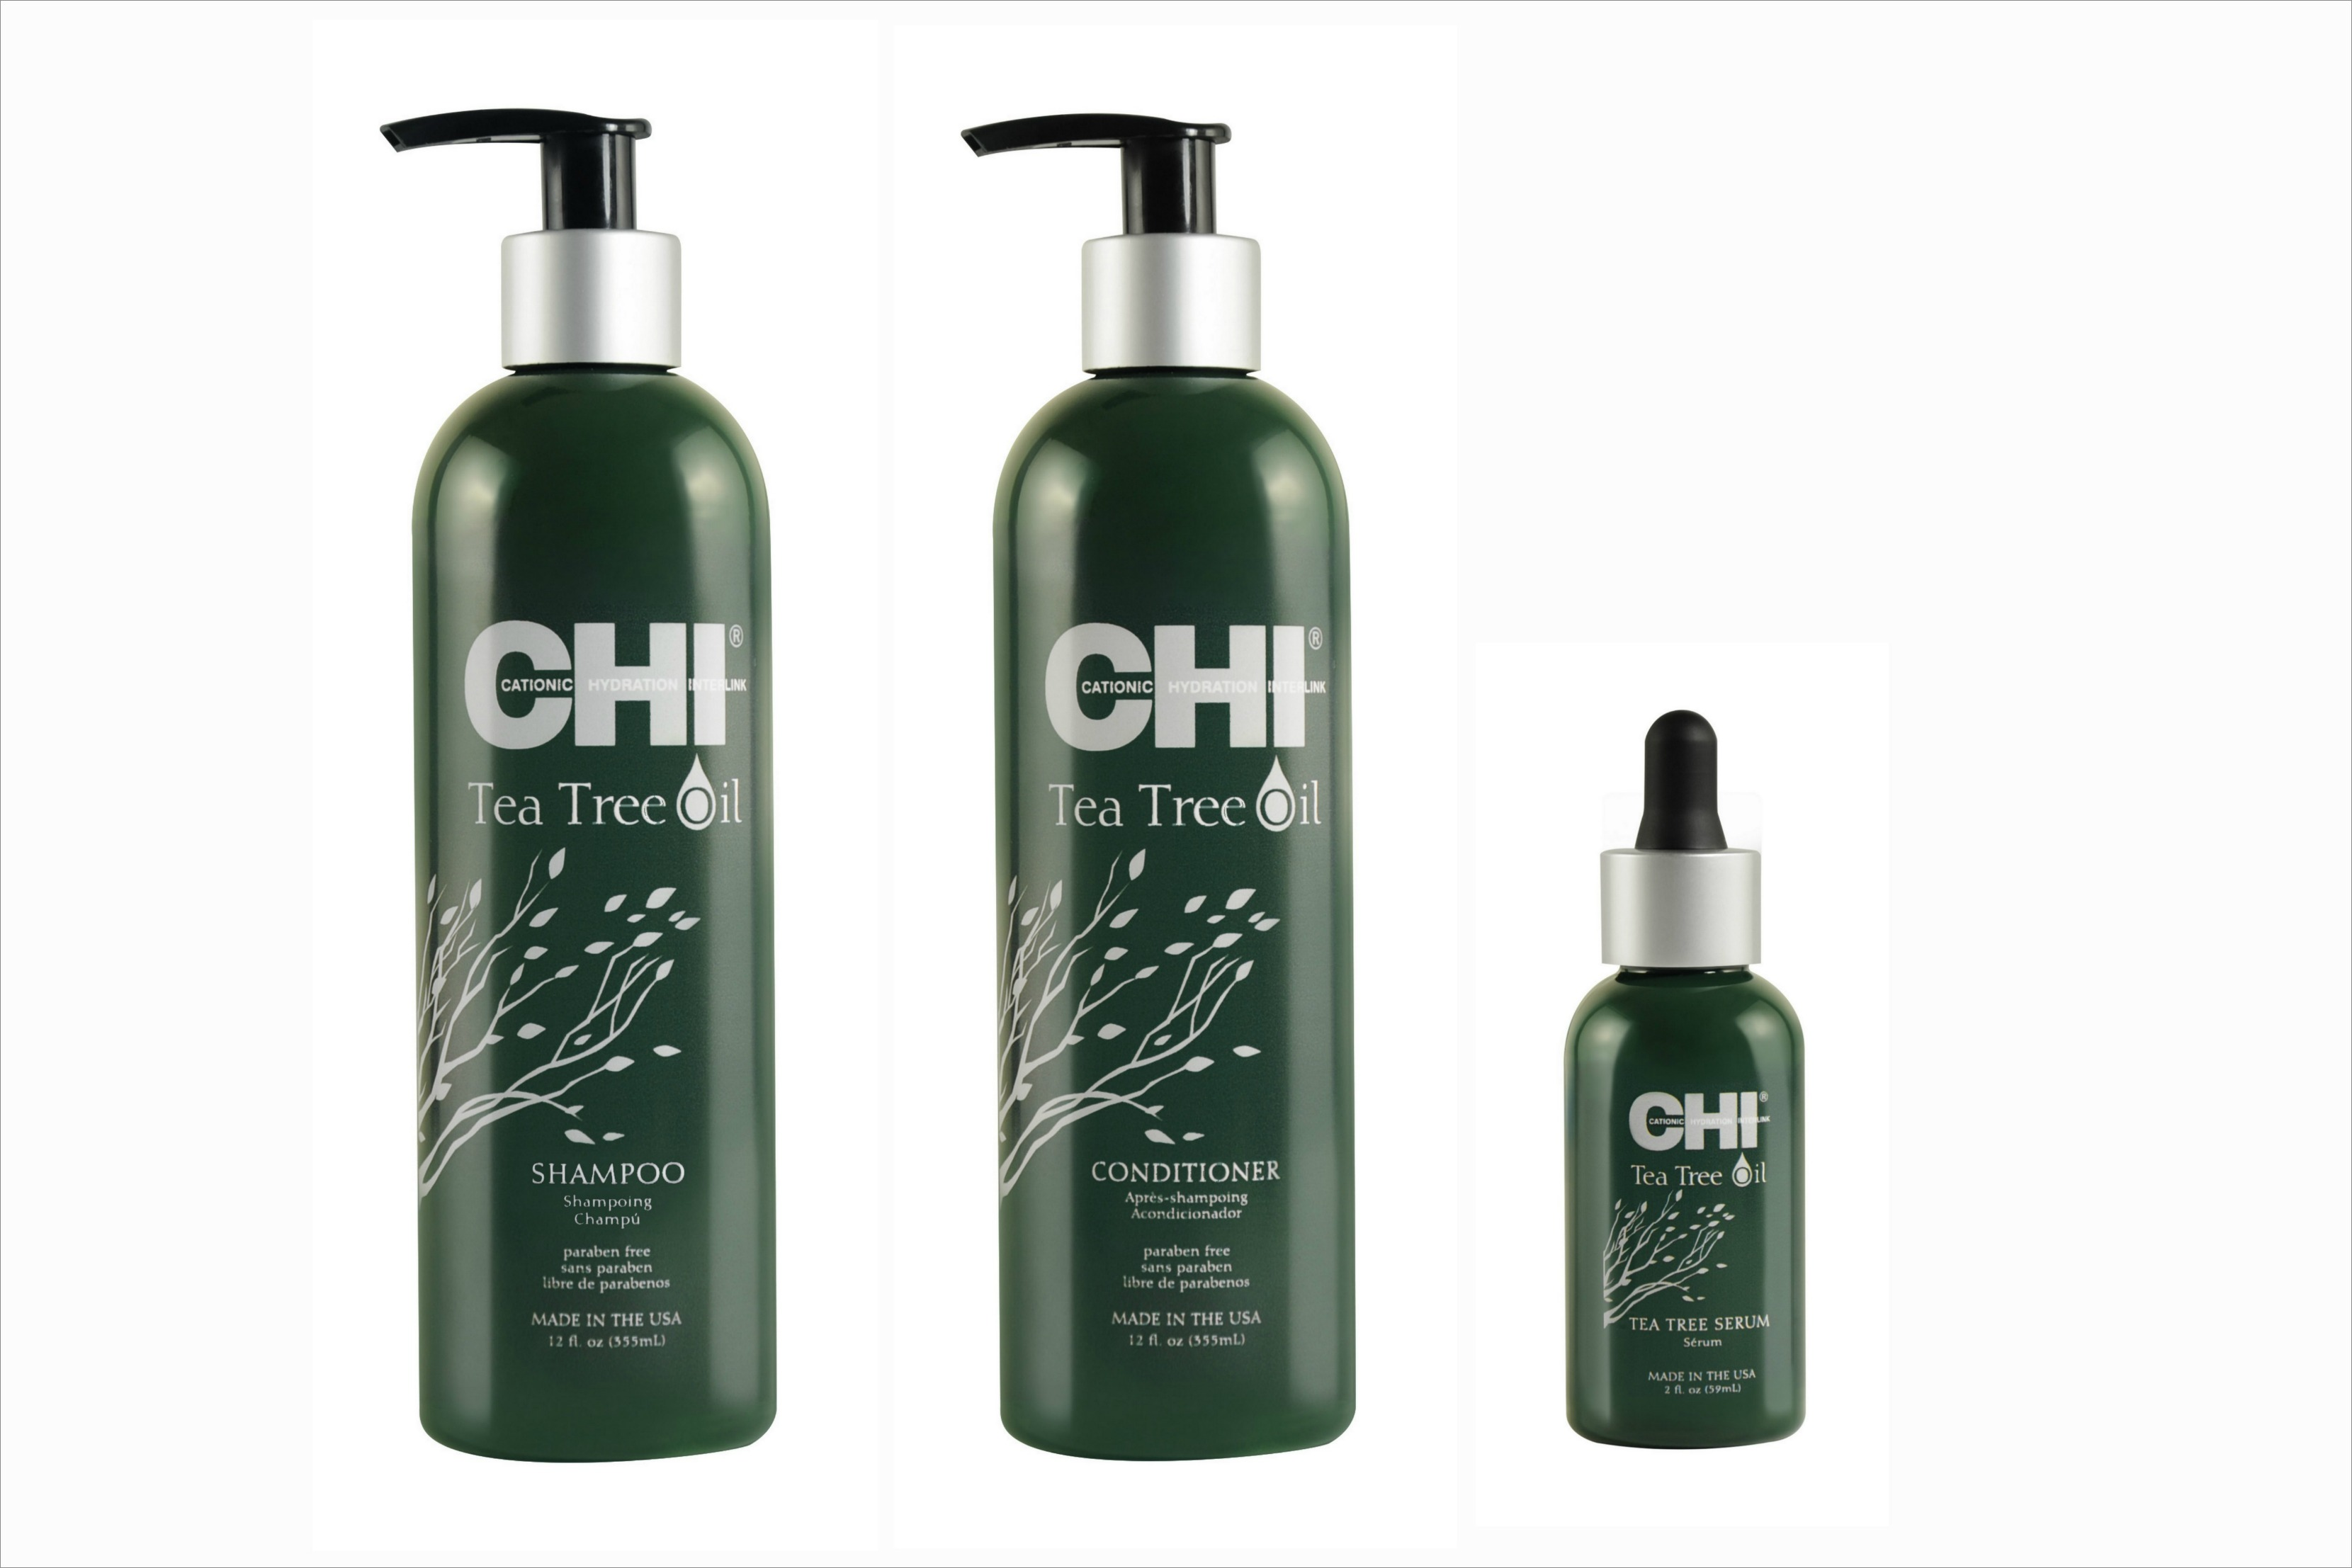 CHI Tea Tree Oil products shampoo conditioner and serum